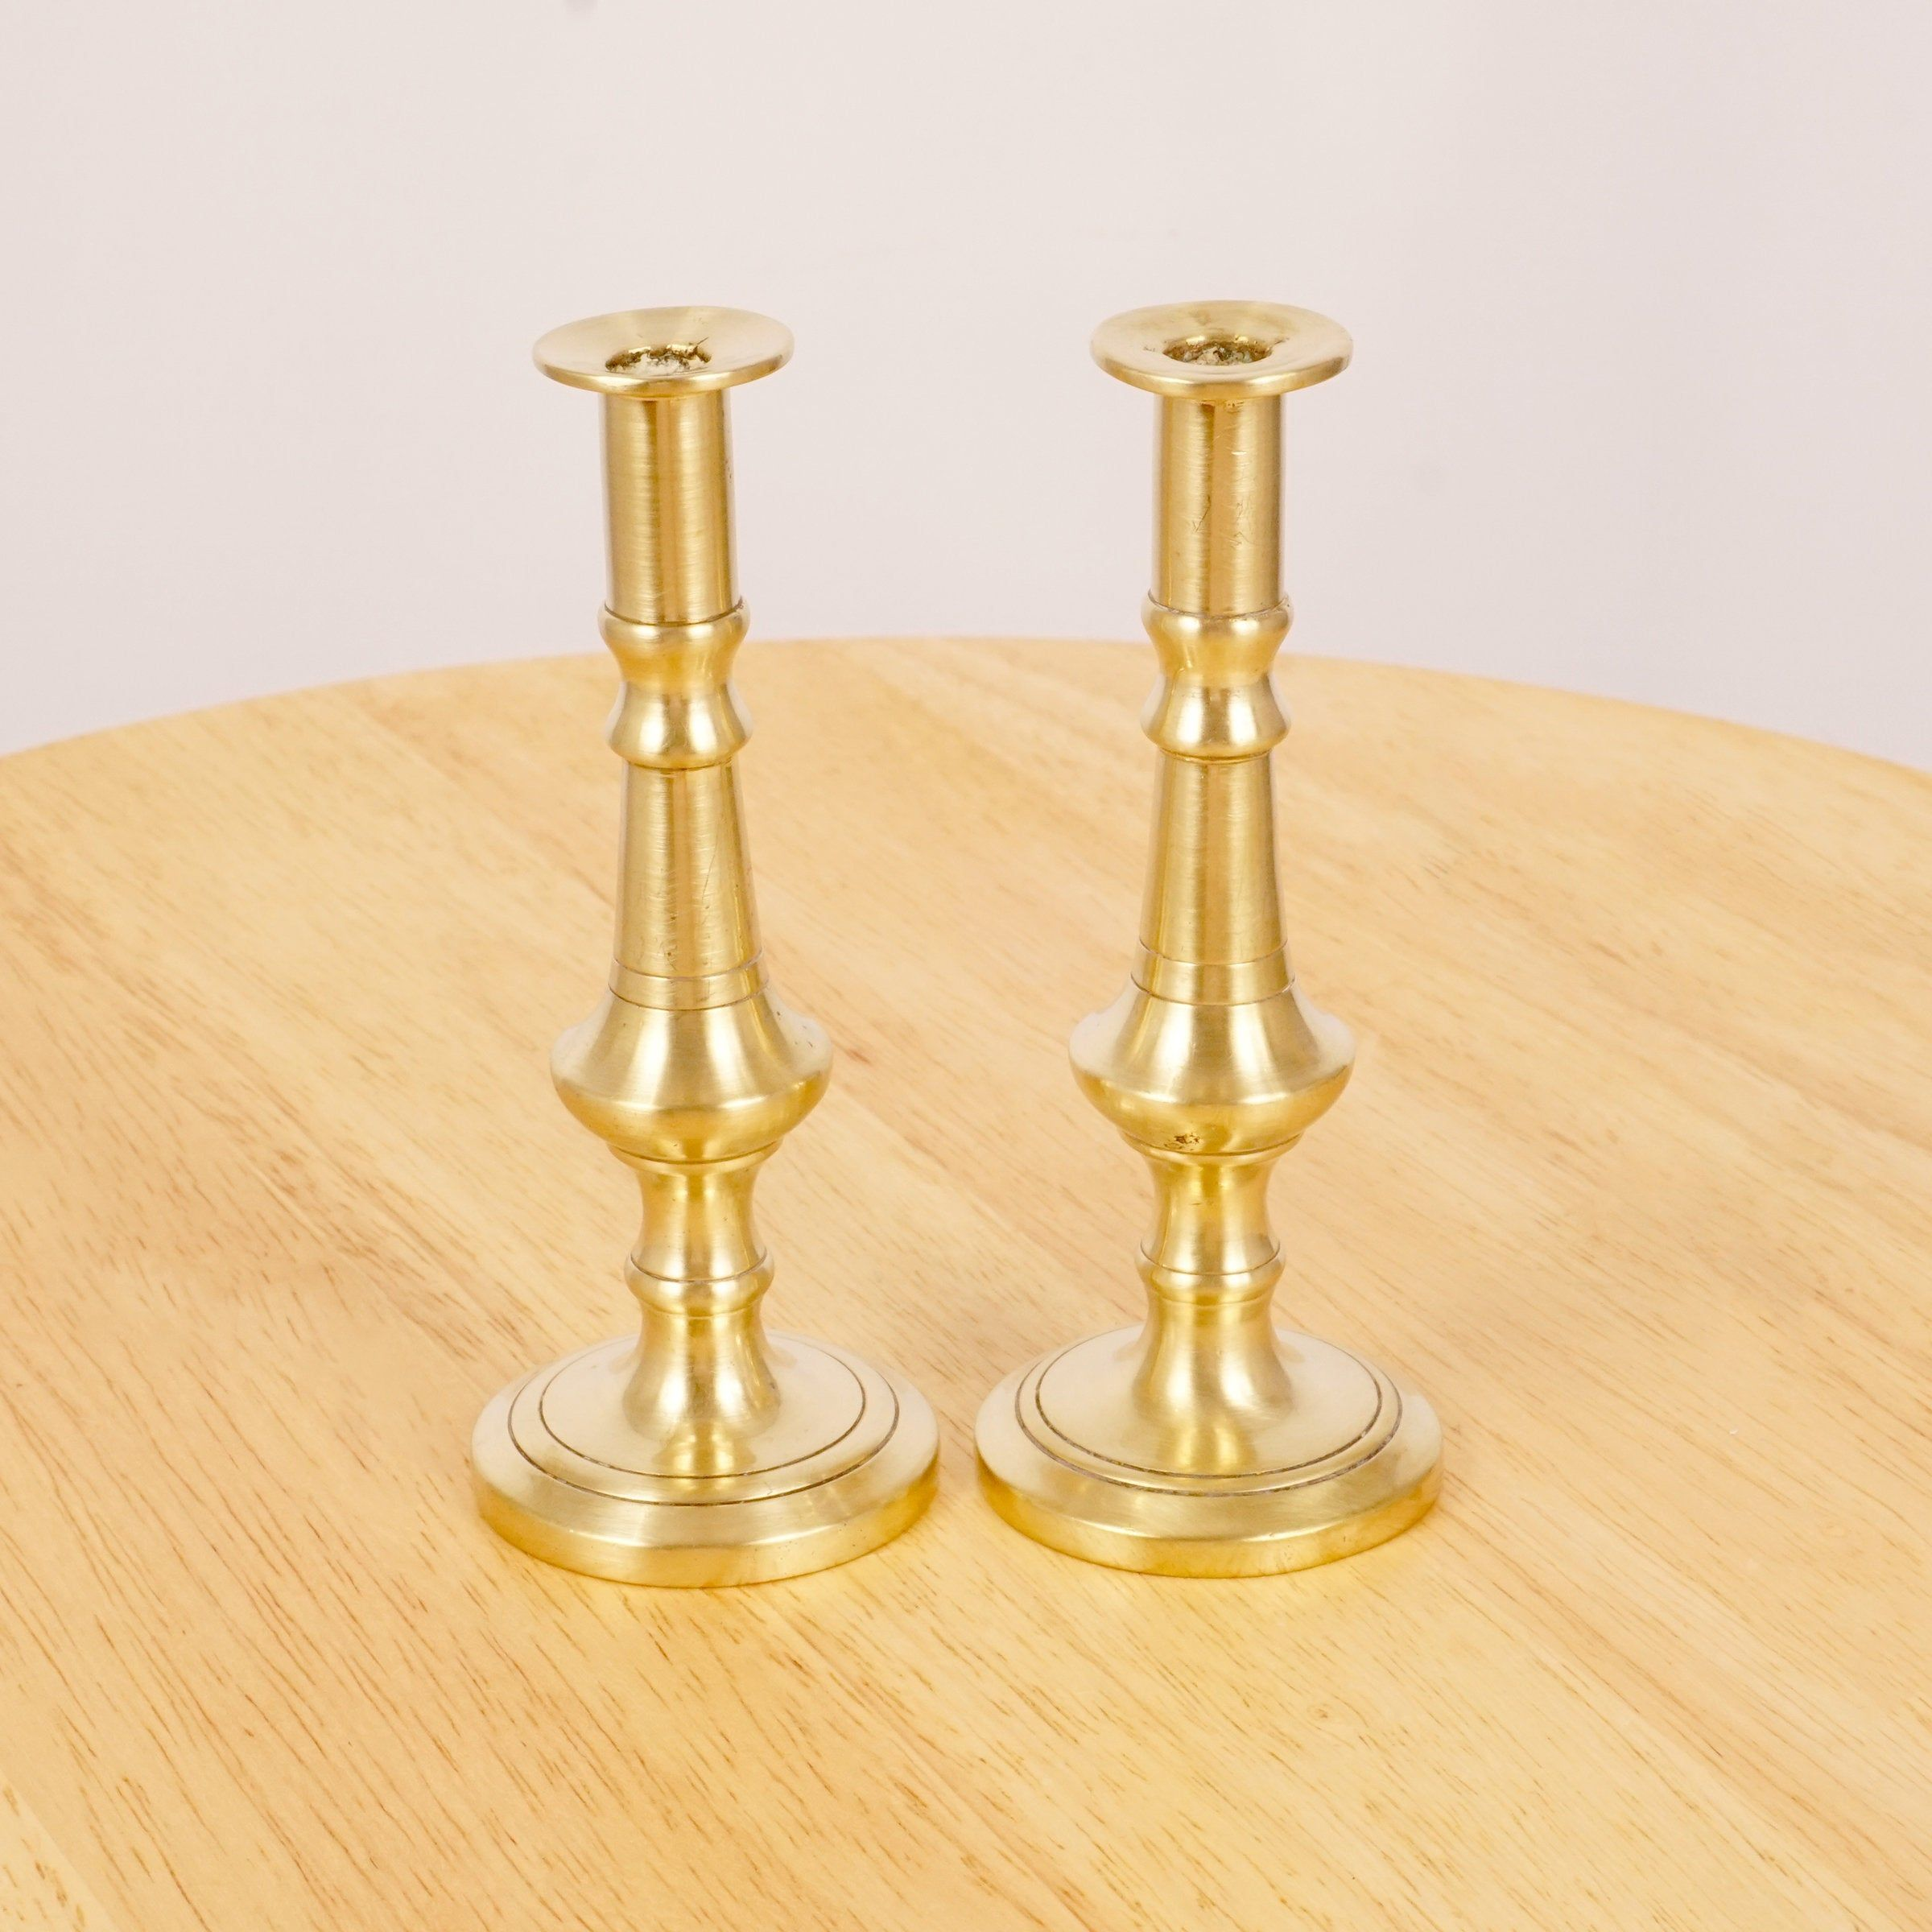 2 Candlestick Holders Candle Holder Vintage Solid Brass